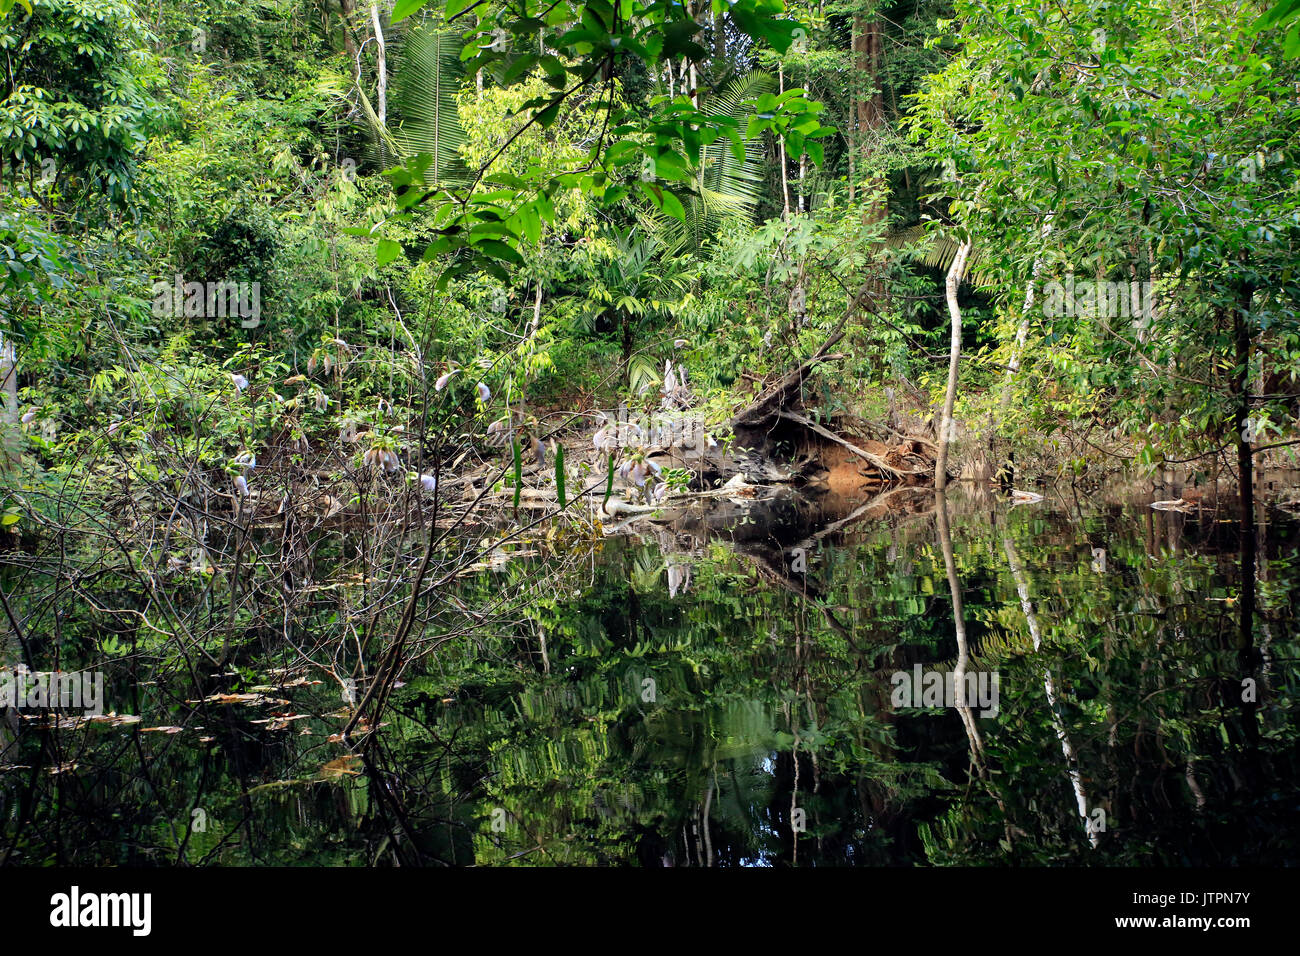 Flooded Area in the Amazon Rainforest, Brazil - Stock Image